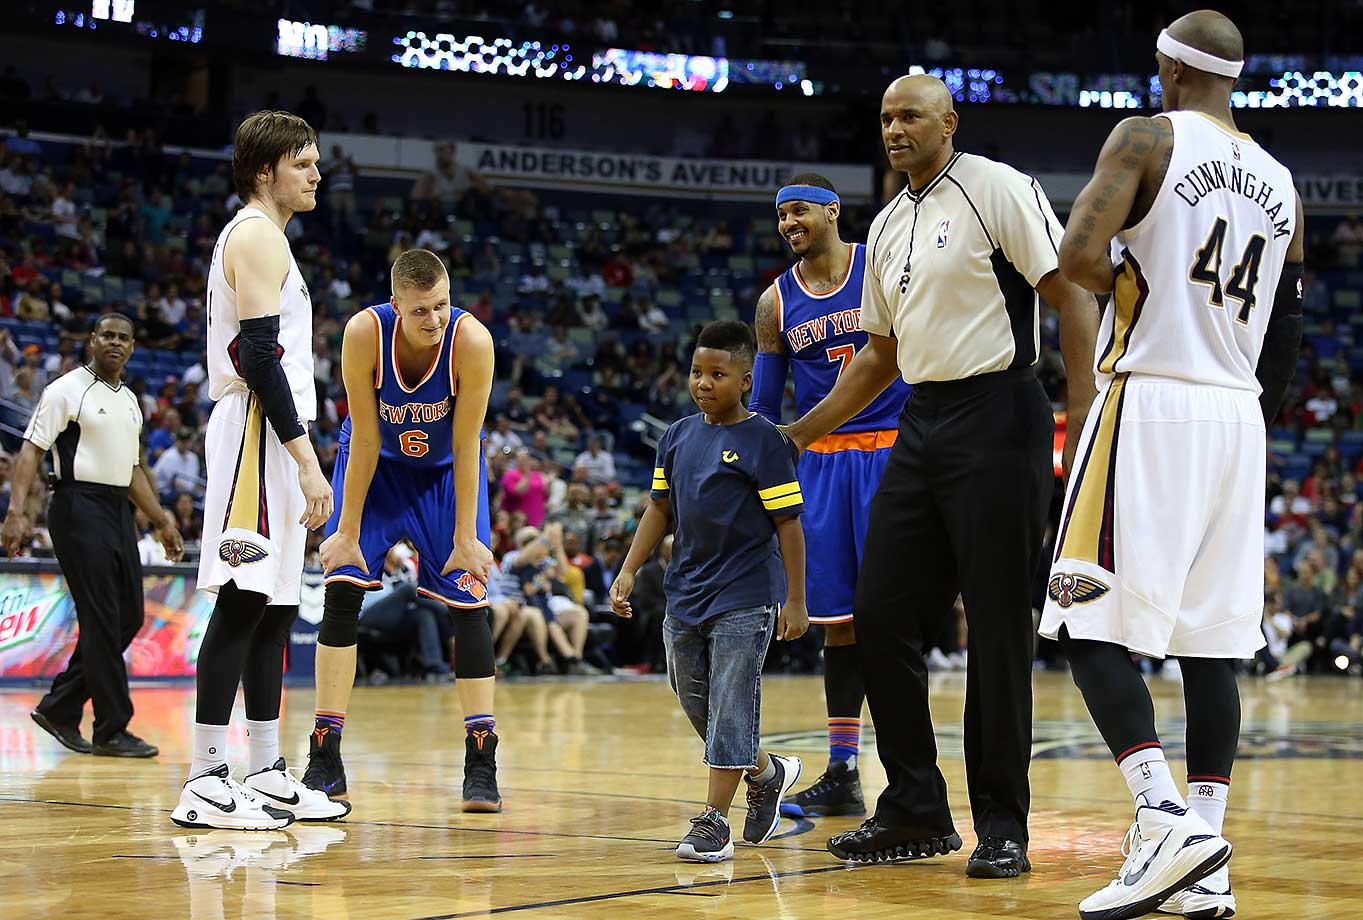 A young boy is escorted off the court after running out there to hug Carmelo Anthony of the Knicks during a game against New Orleans.